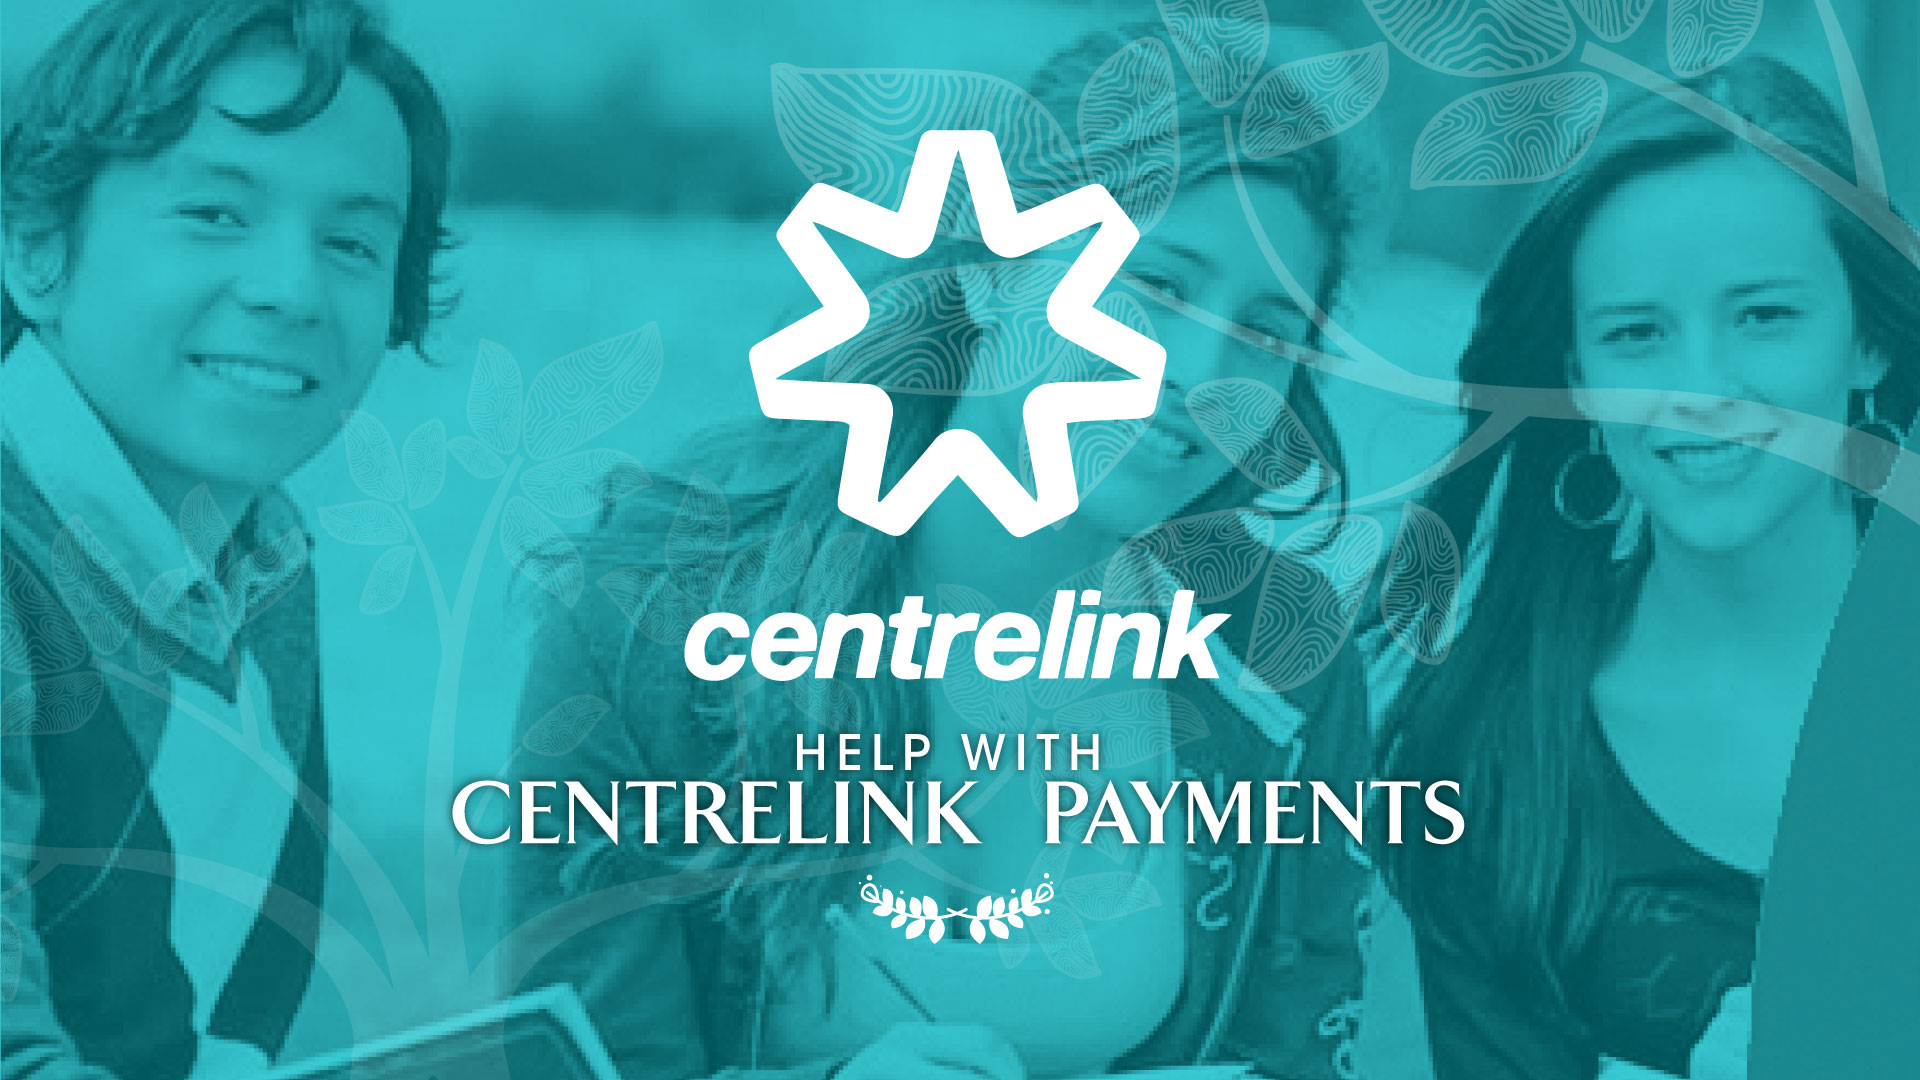 Help With Centrelink Payments